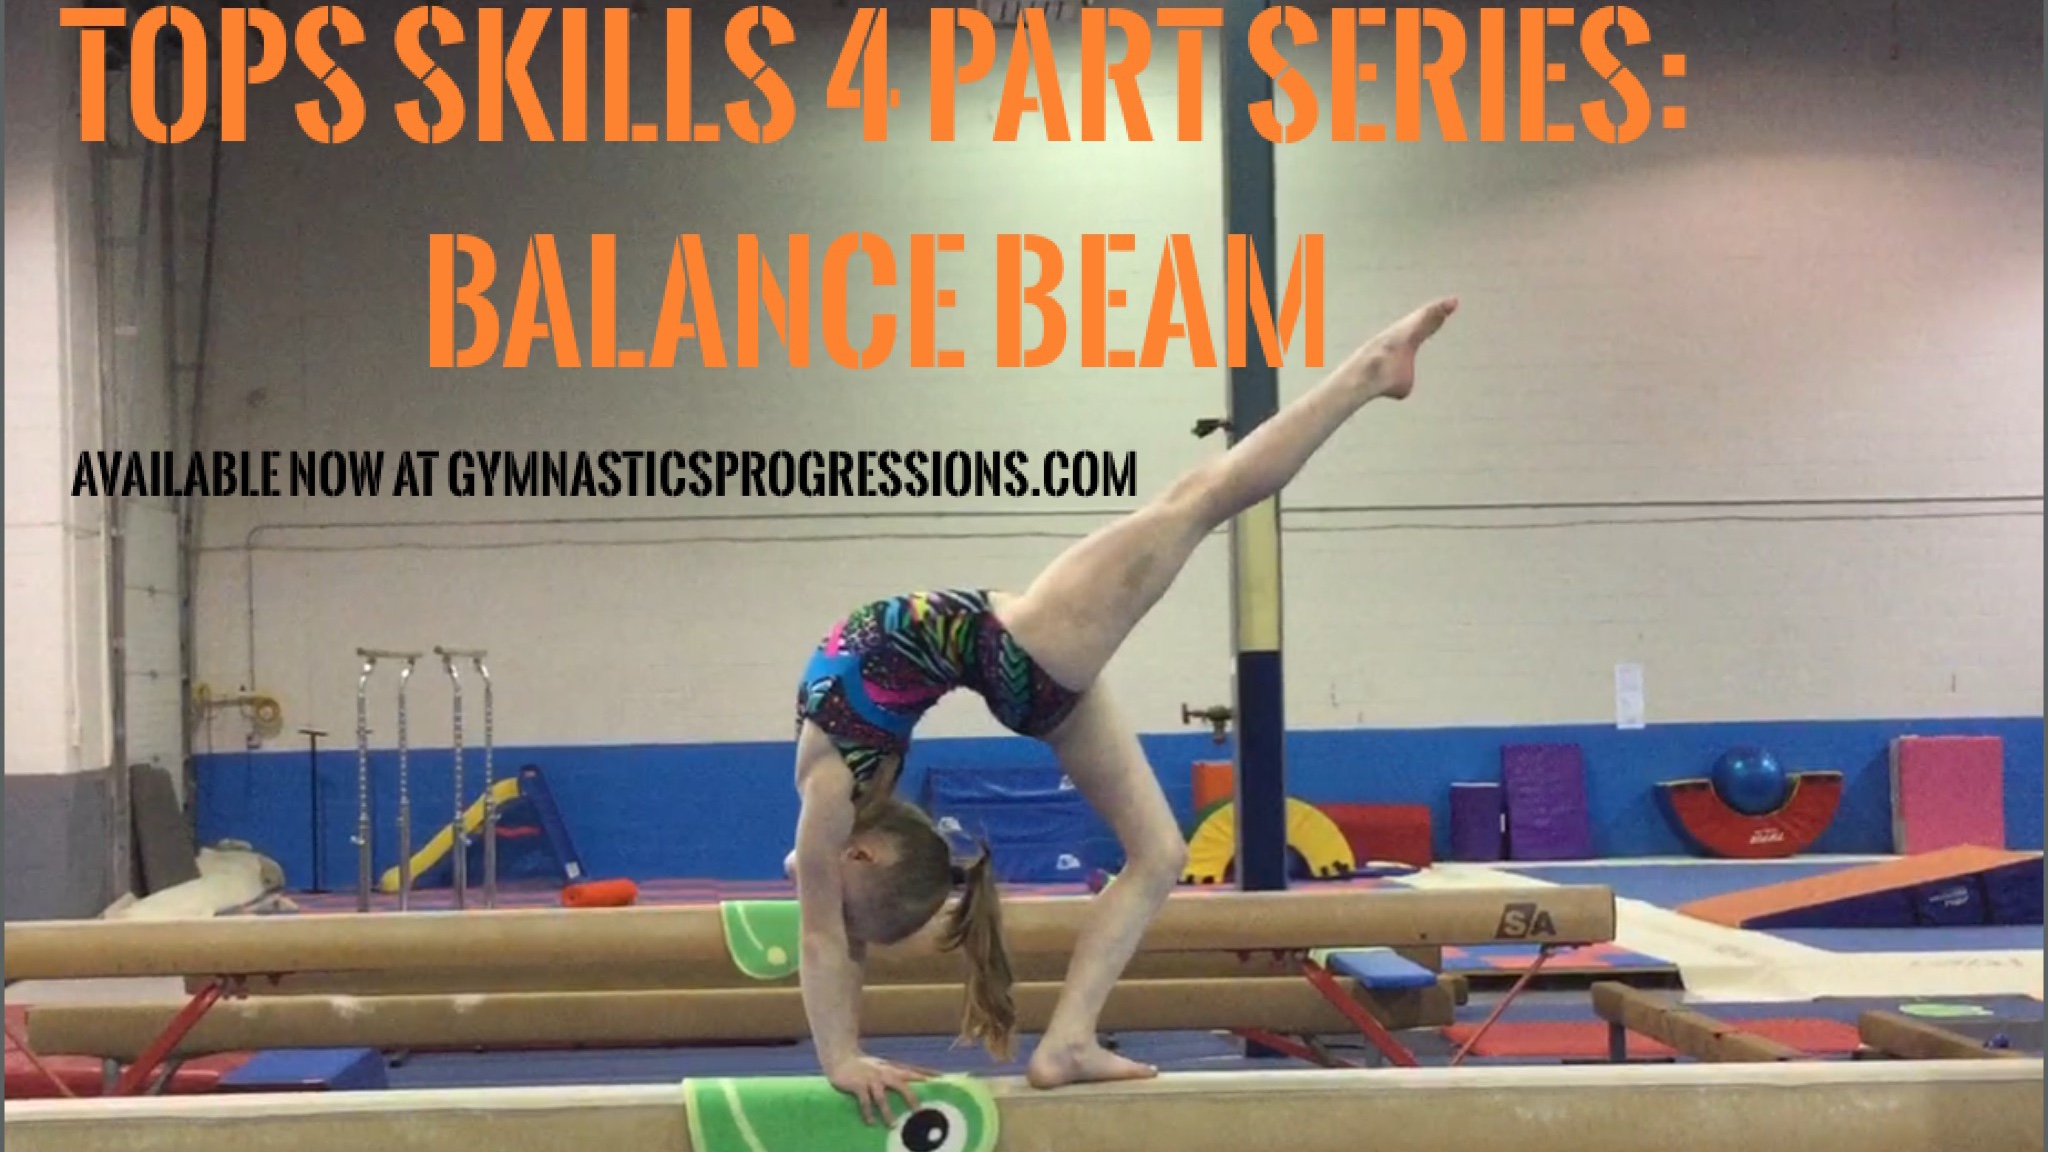 Gymnastics progressions physical abilities part 3 balance beam fandeluxe Image collections